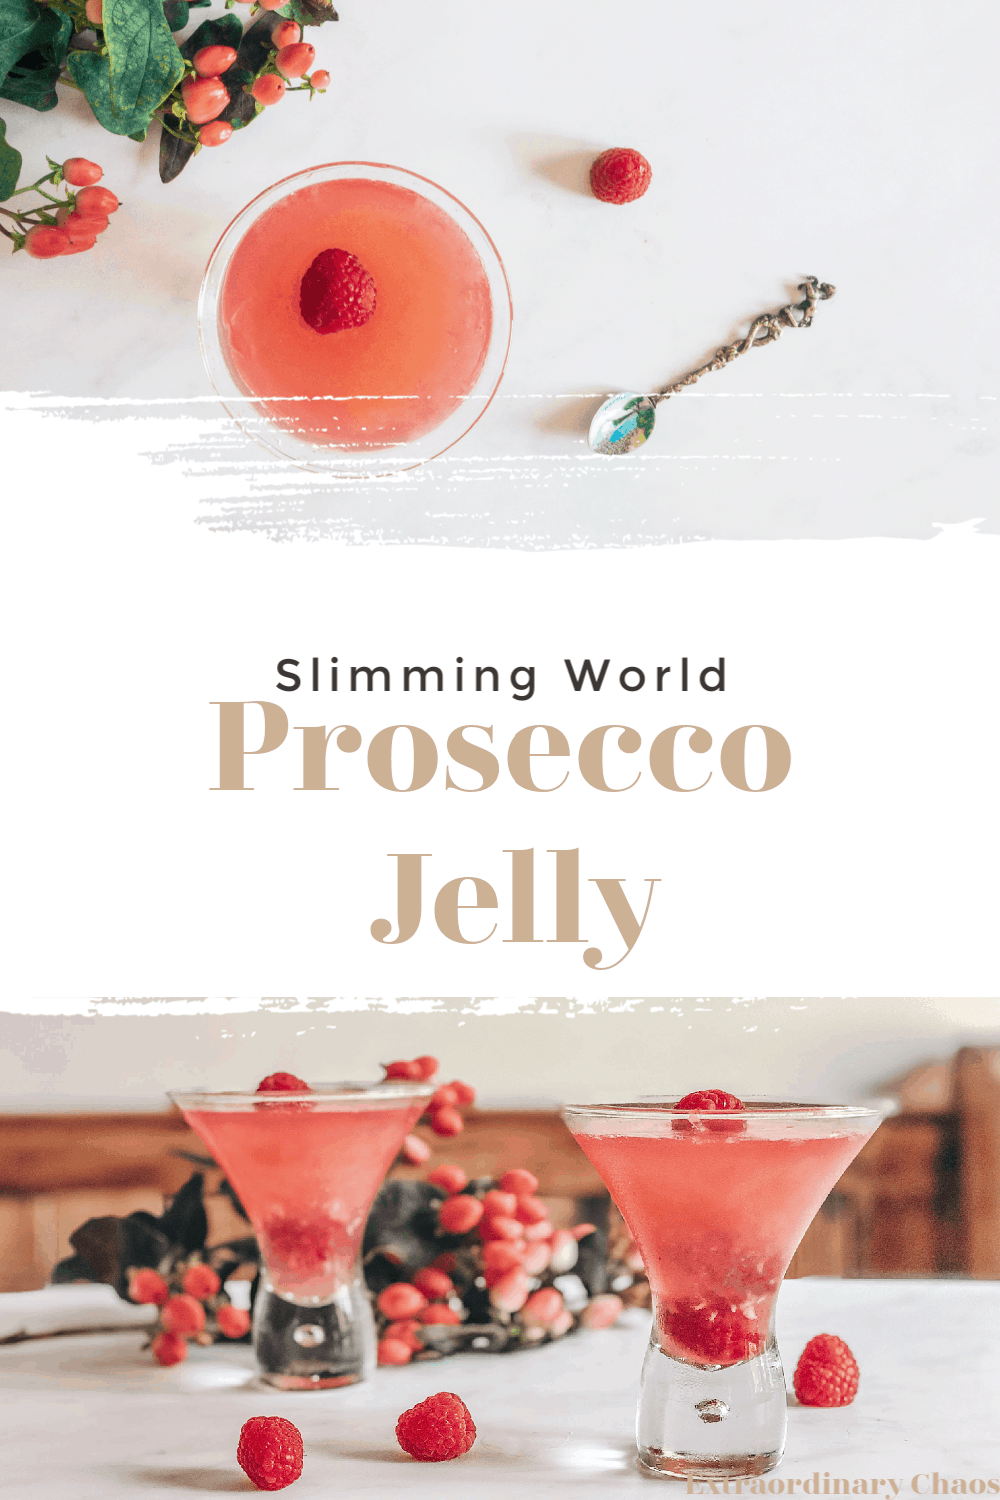 Slimming world Rasberry Prosecco Jelly